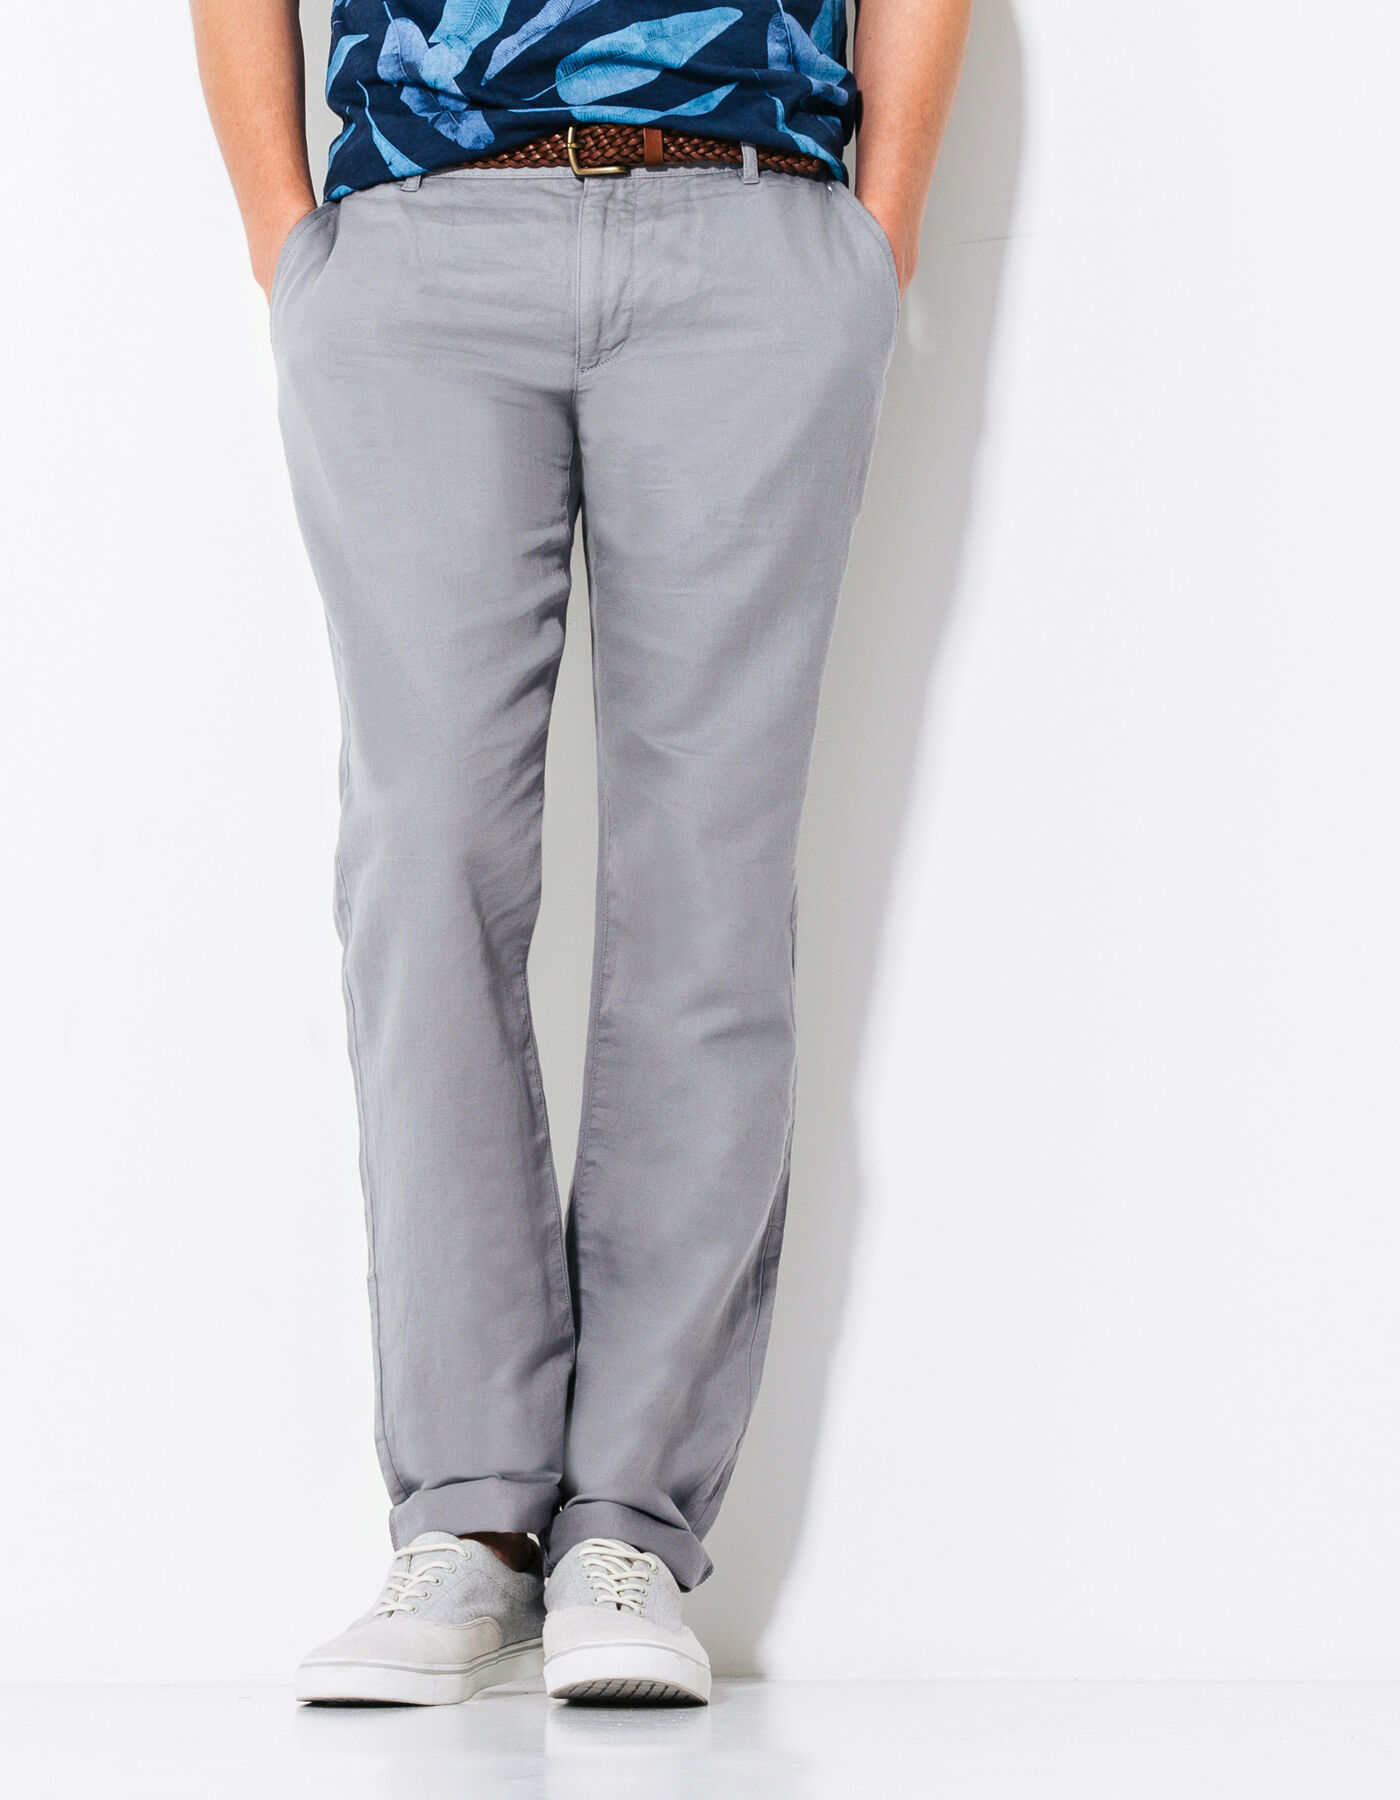 Pantalon lin gris homme fashion designs for Pantalon interieur homme